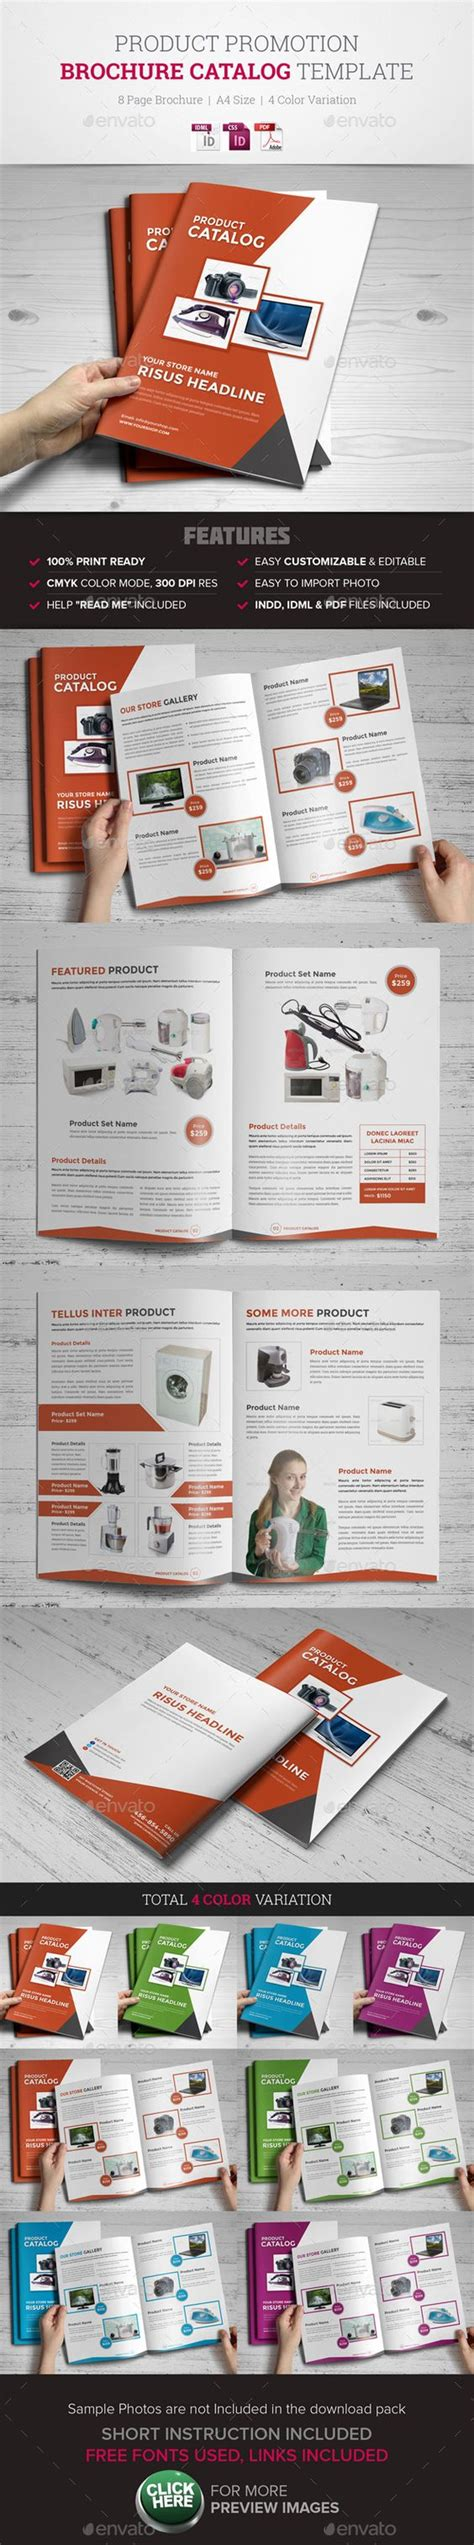 product catalog template indesign product promotion catalog indesign template products